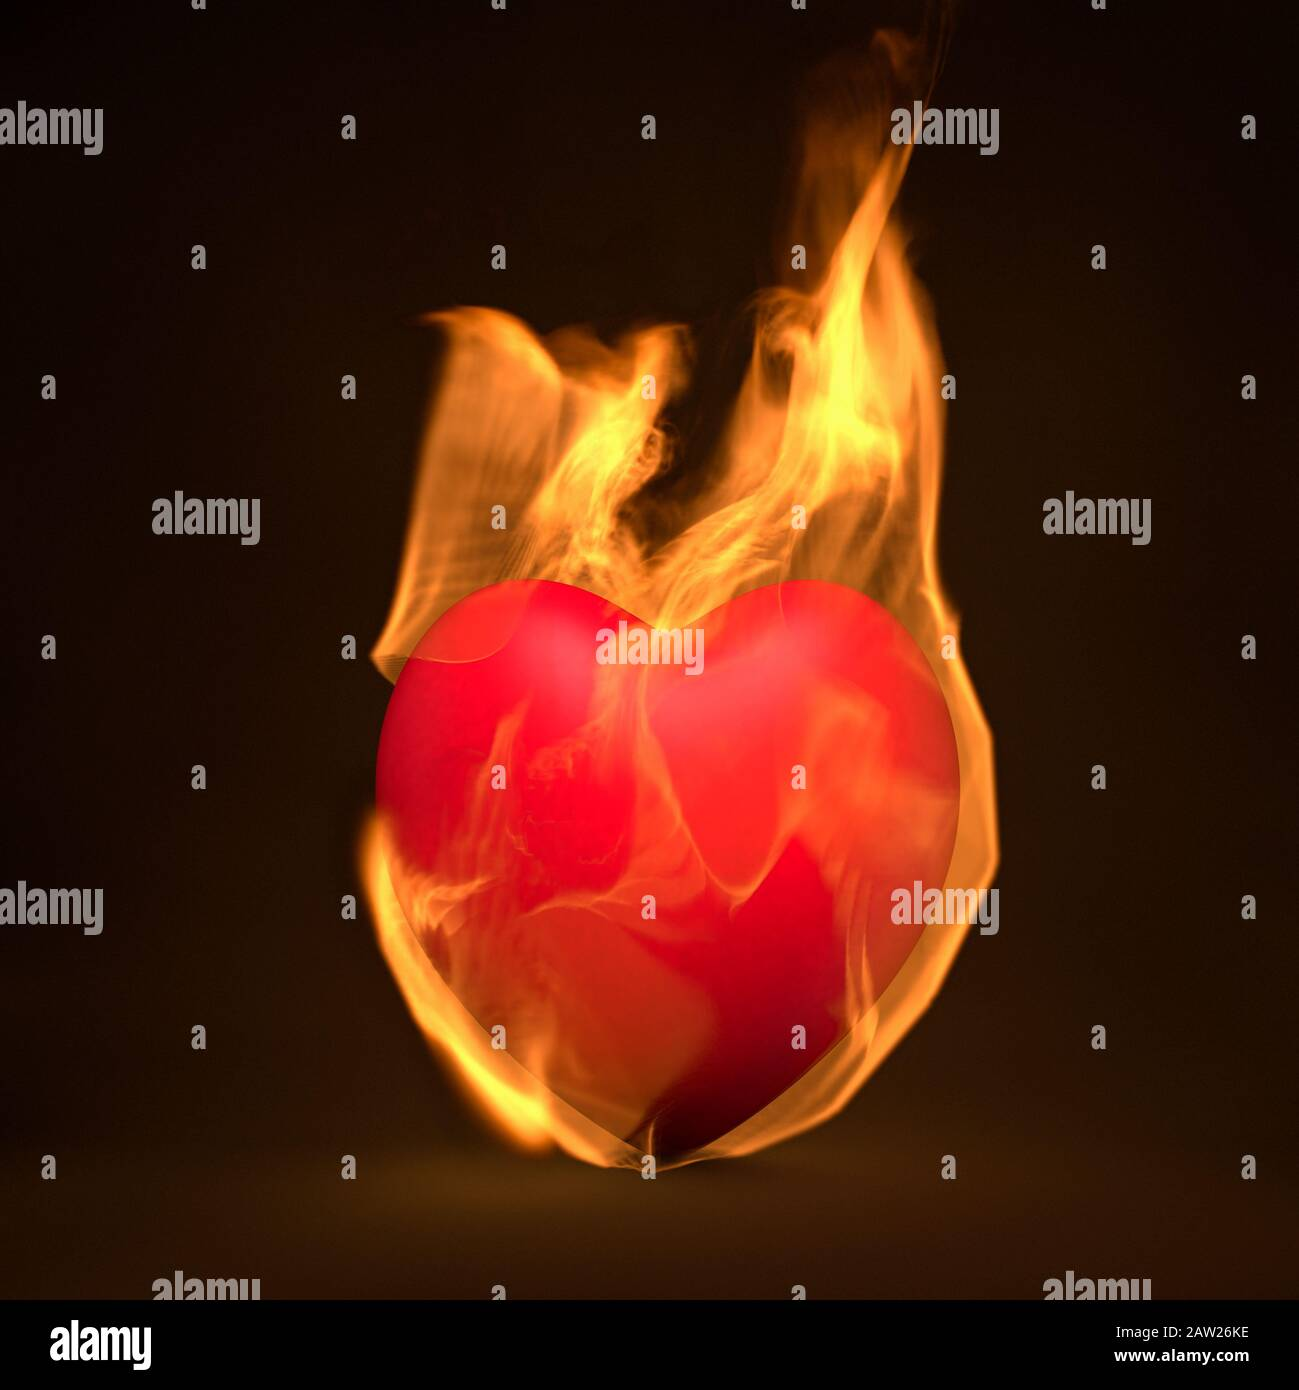 Red heart on fire, burning in flames Stock Photo